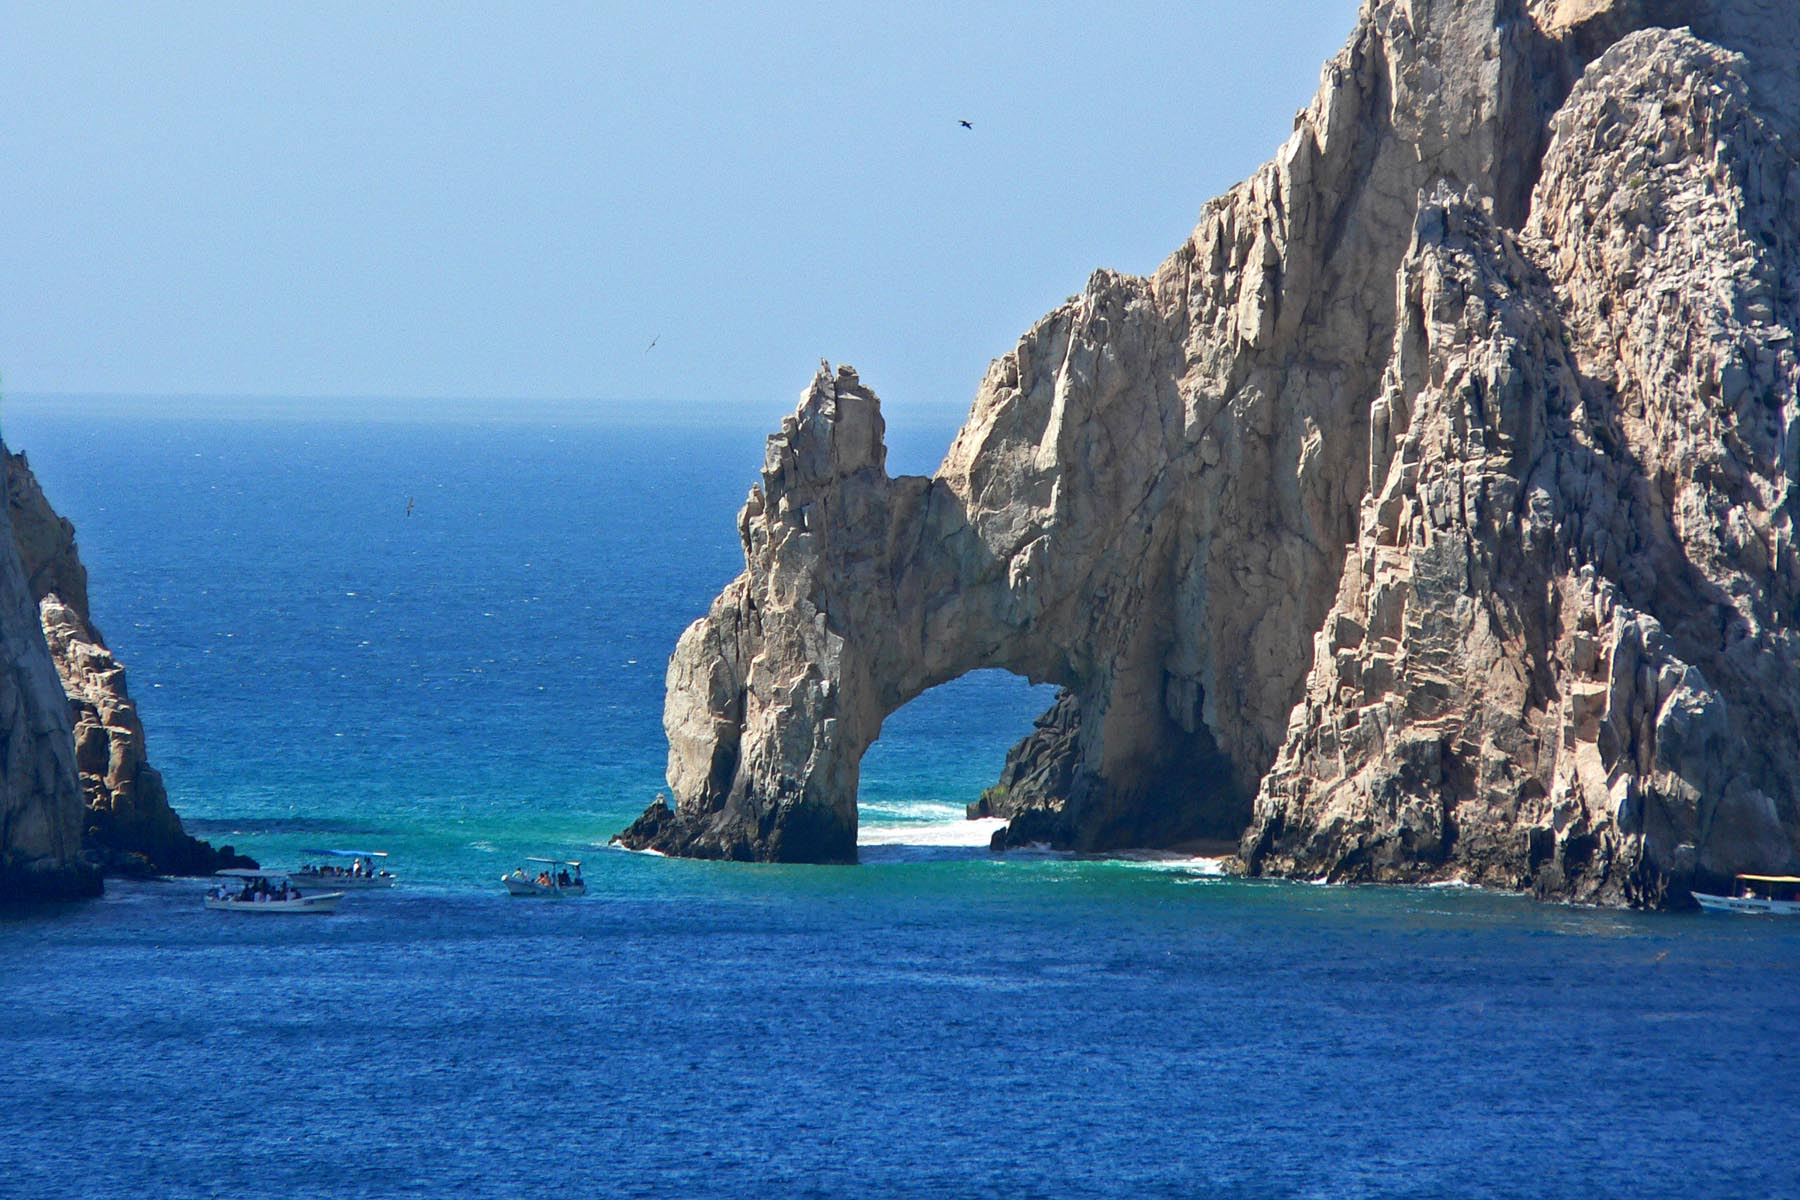 Los Cabos - Sourced from WikiPedia